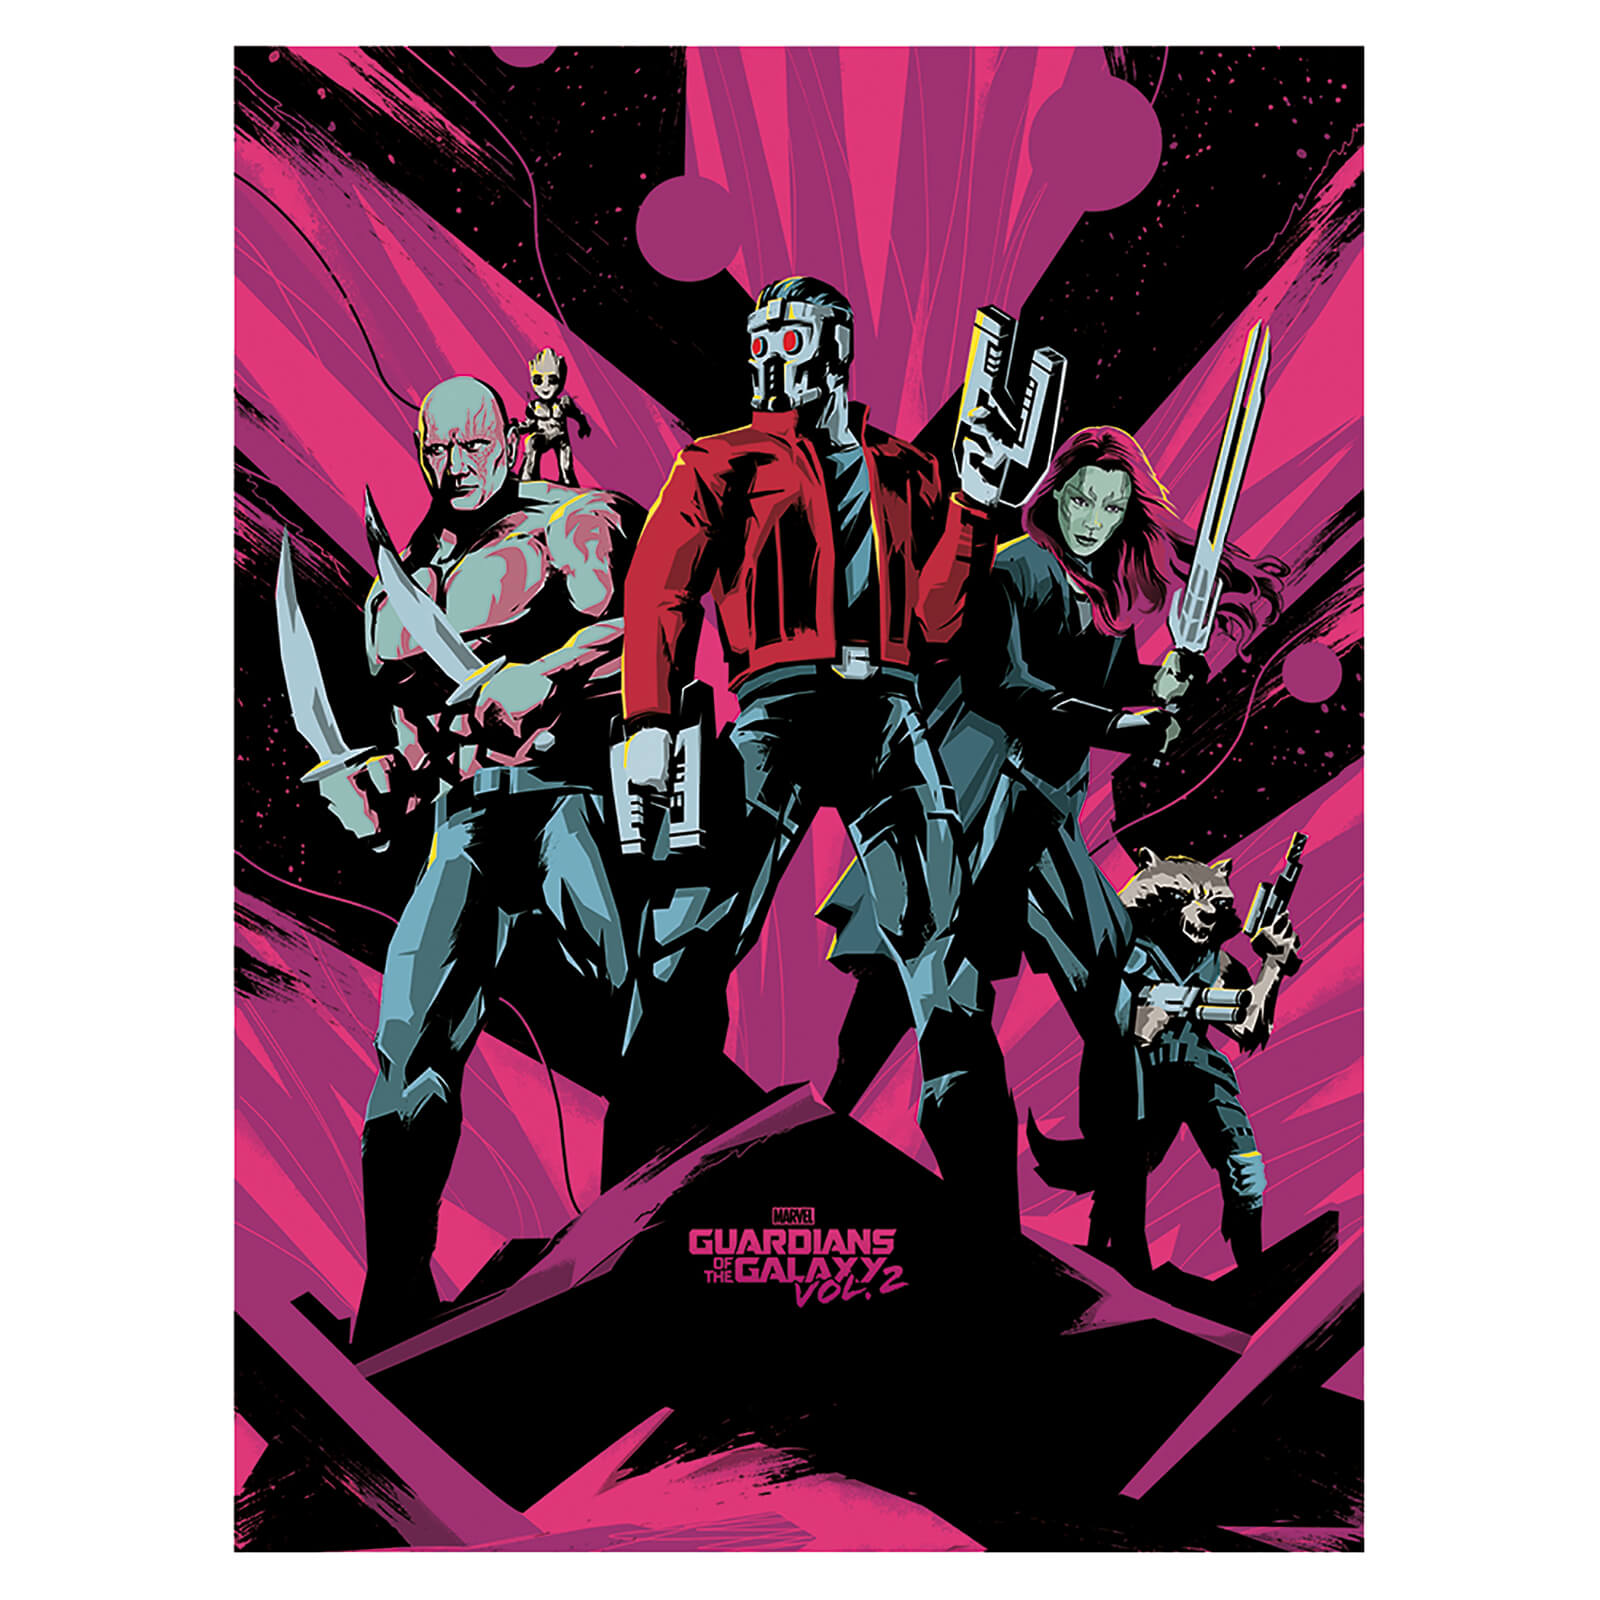 Guardians of the Galaxy Vol. 2 (Unite) 60 x 80cm Canvas Print